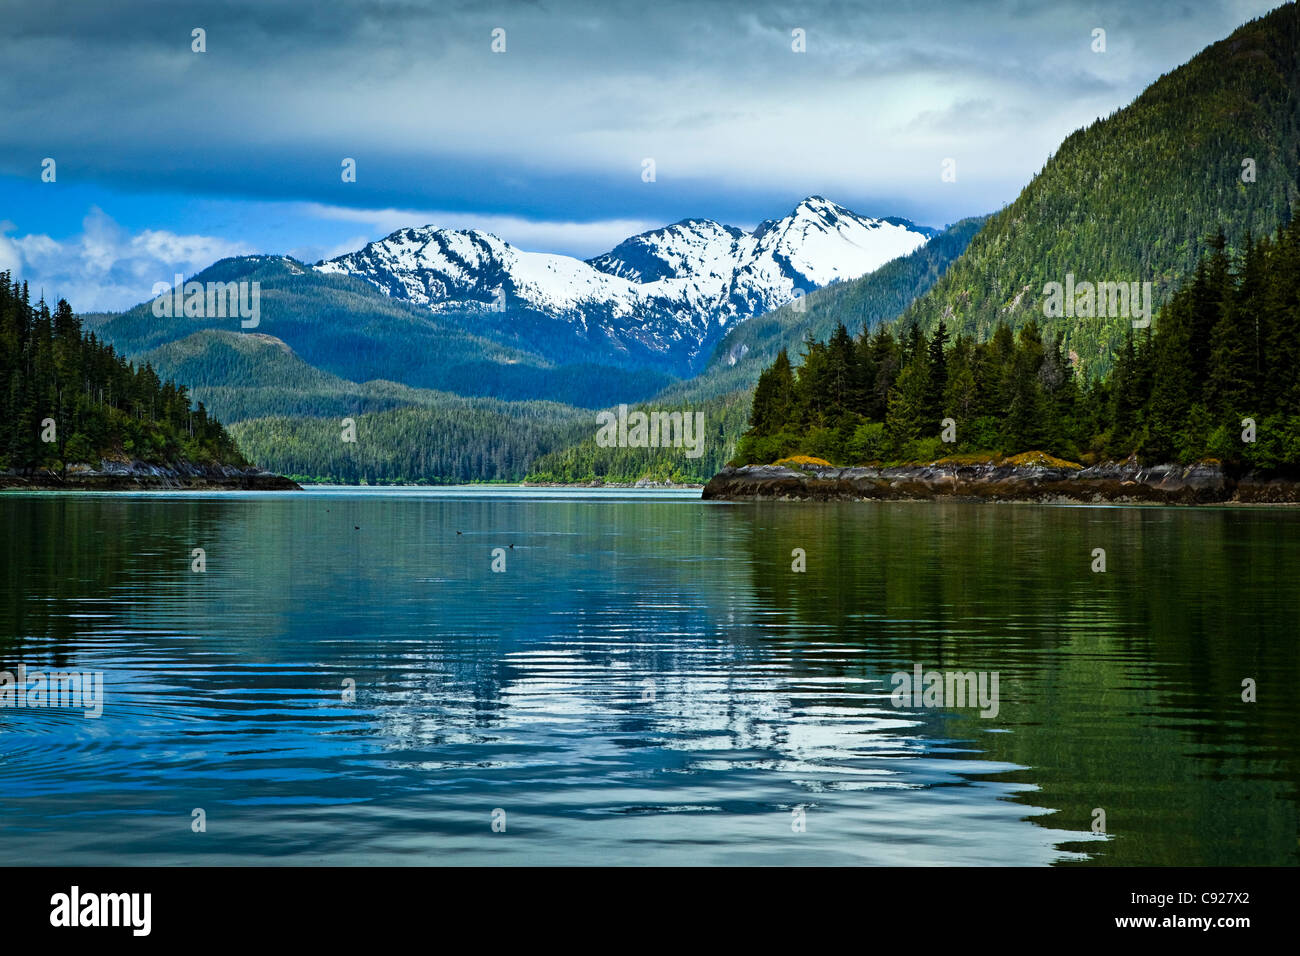 Landscape of Scenery Cove, Thomas Bay, Petersburg, Southeast Alaska, Summer Stock Photo